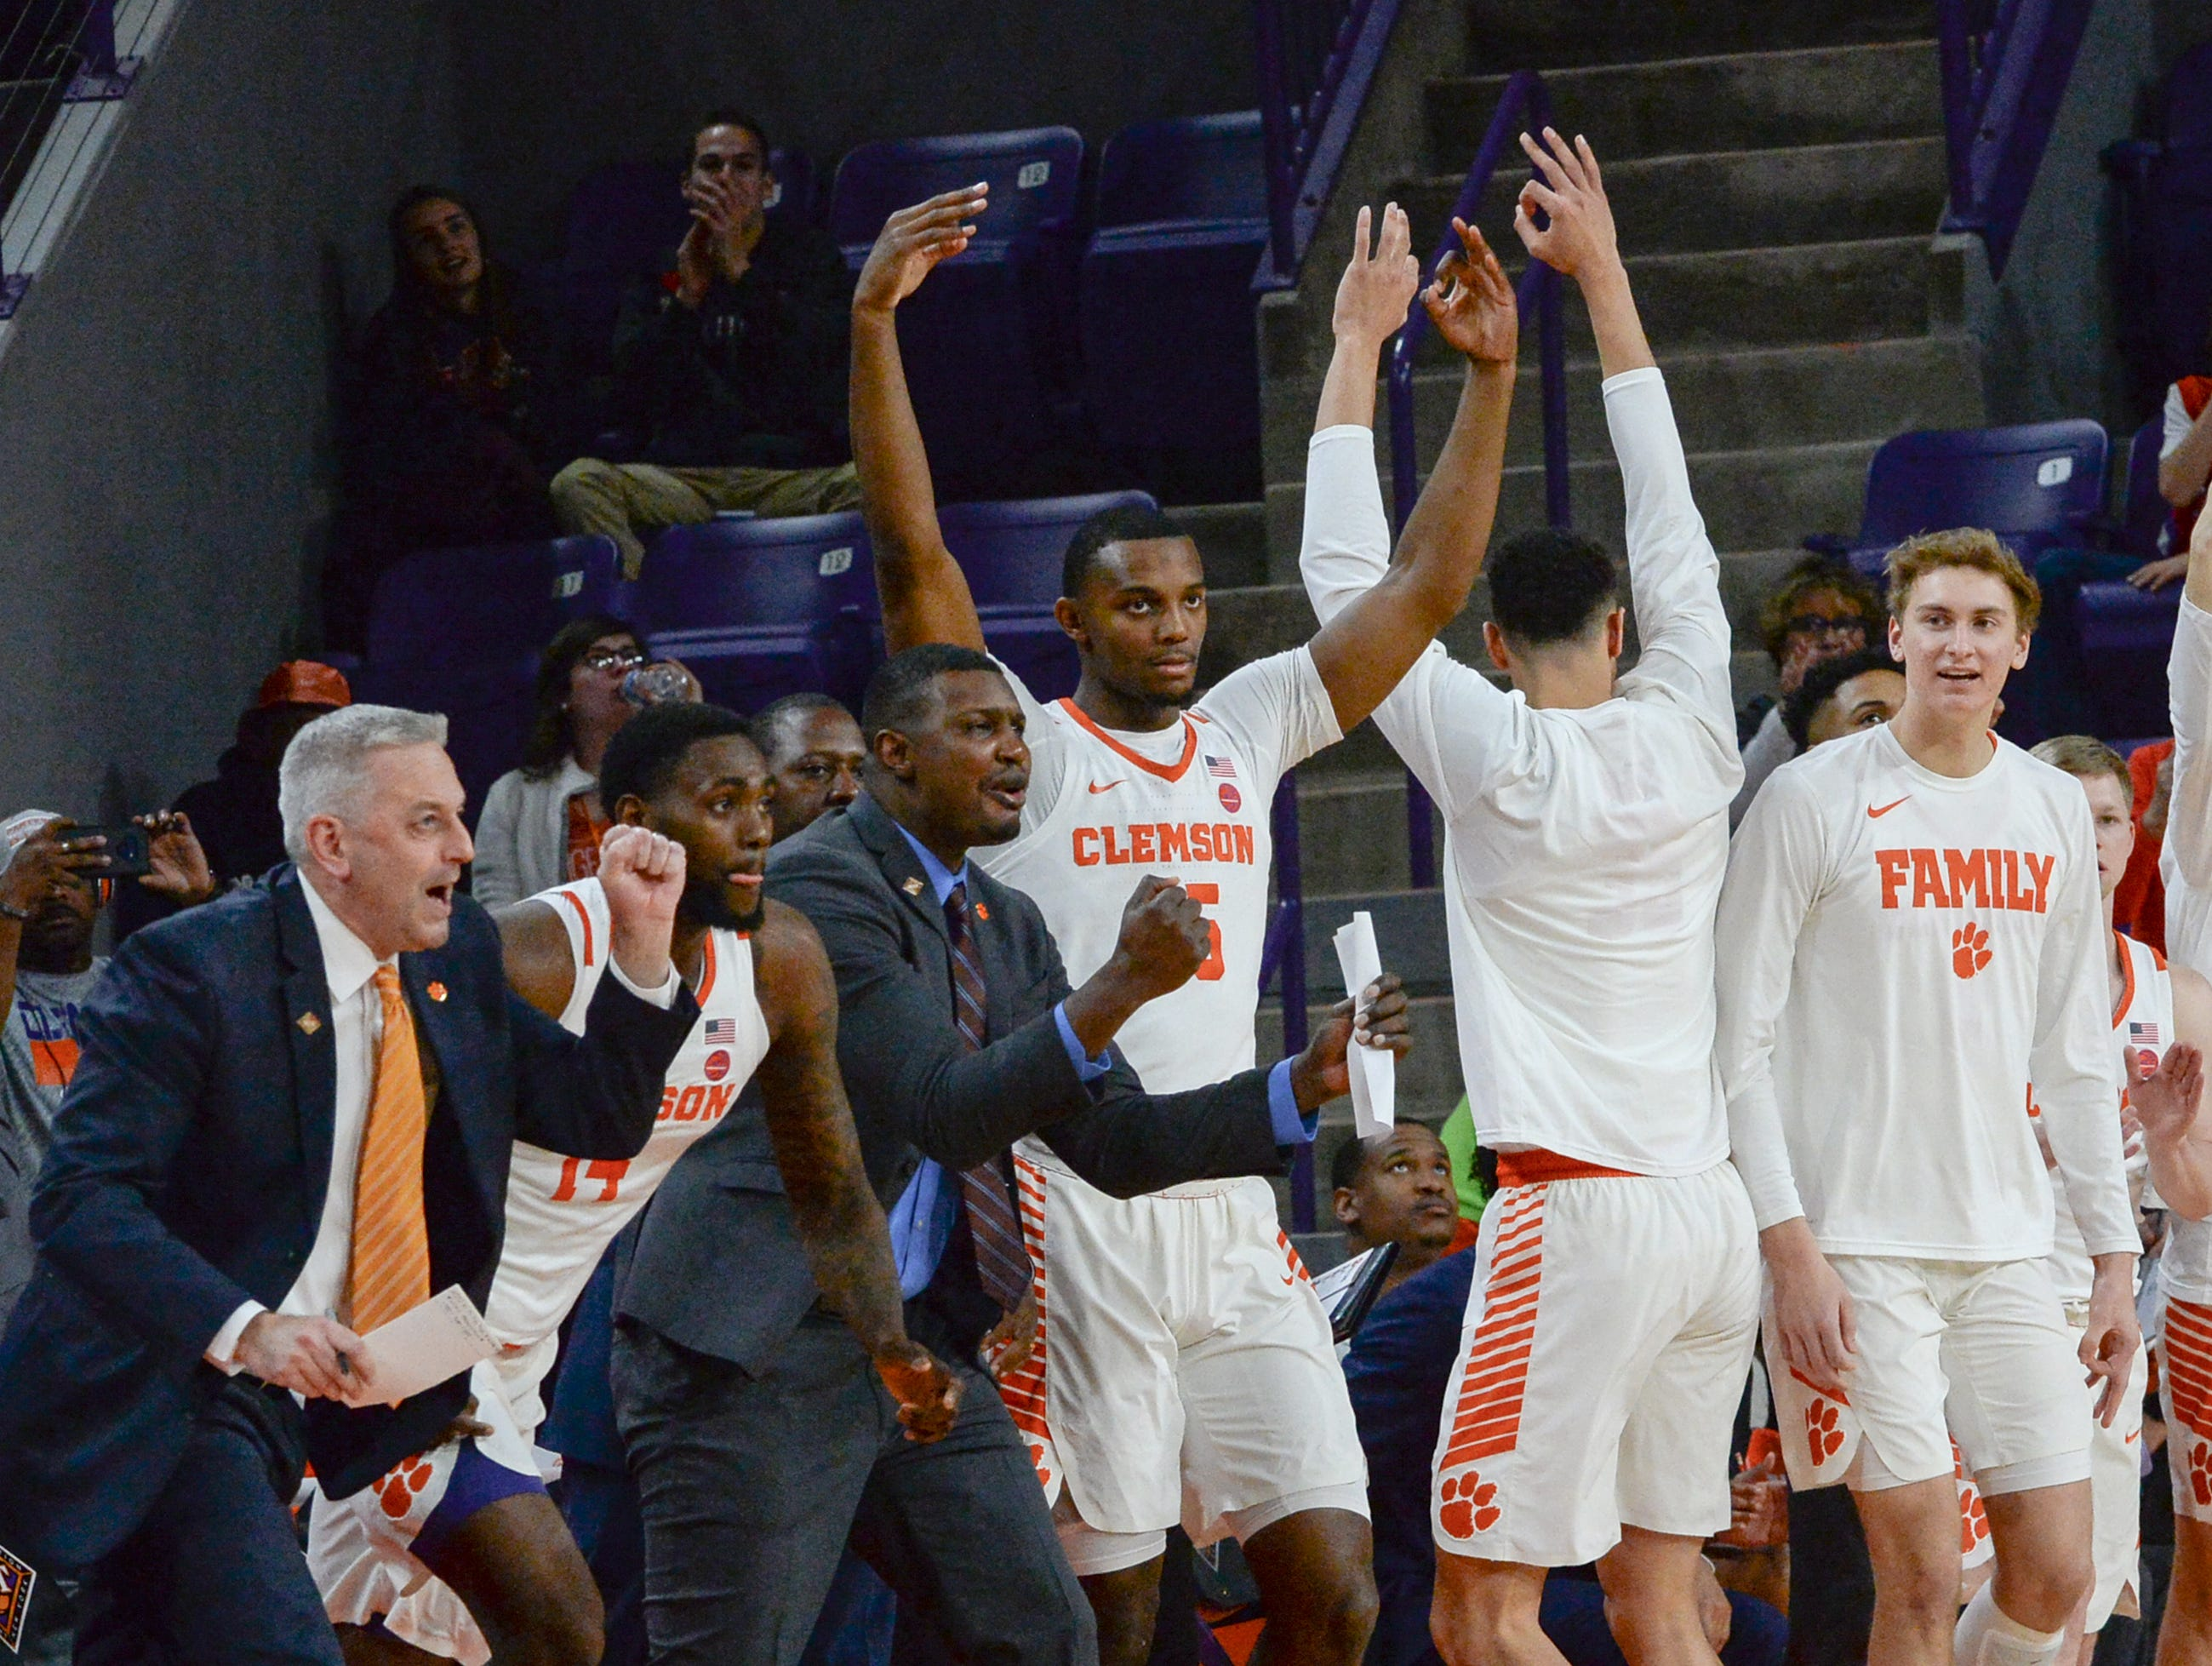 Clemson celebrates a score against Wright State during the first half of the NIT at Littlejohn Coliseum in Clemson Tuesday, March 19, 2019.